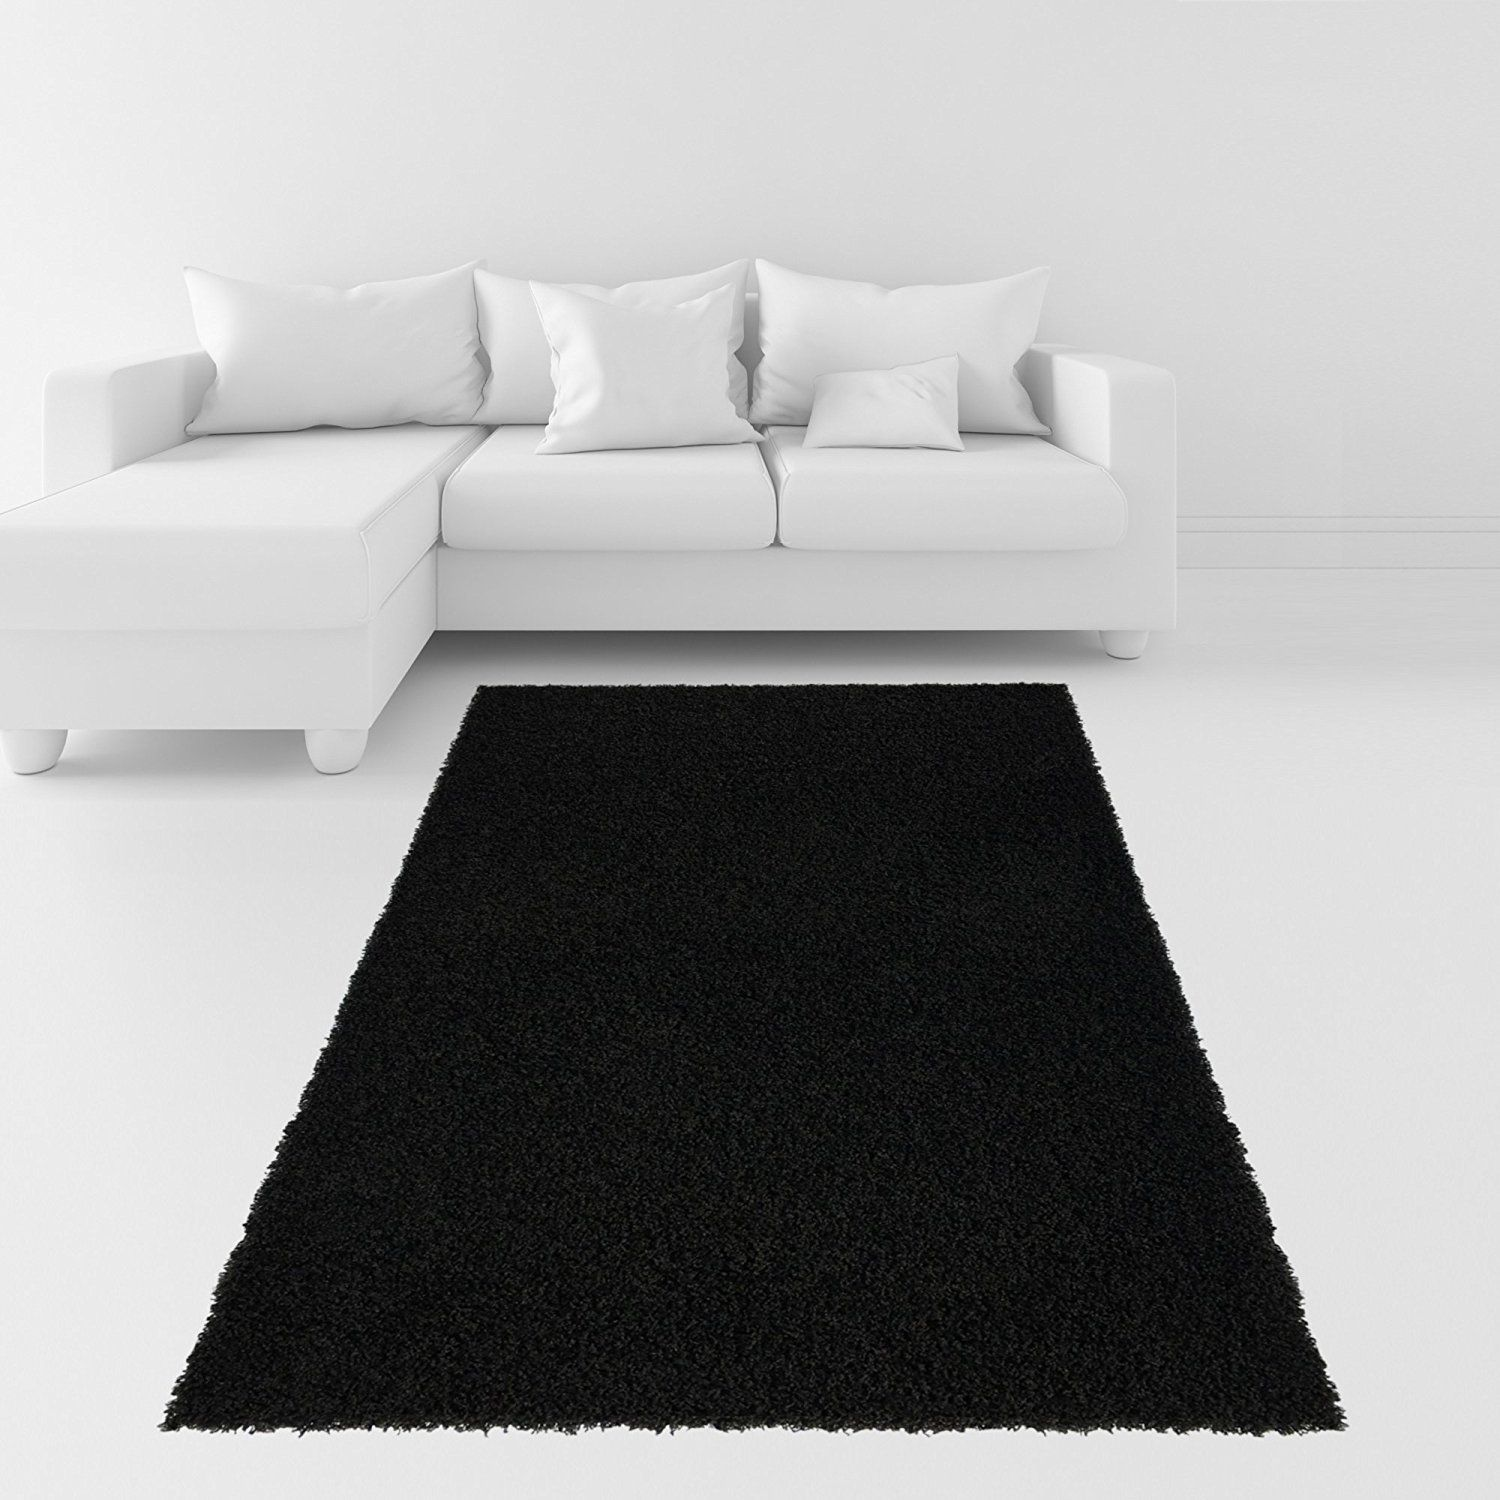 Amazon.com: Soft Shag Area Rug 3x5 Plain Solid Color BLACK ... - photo#10